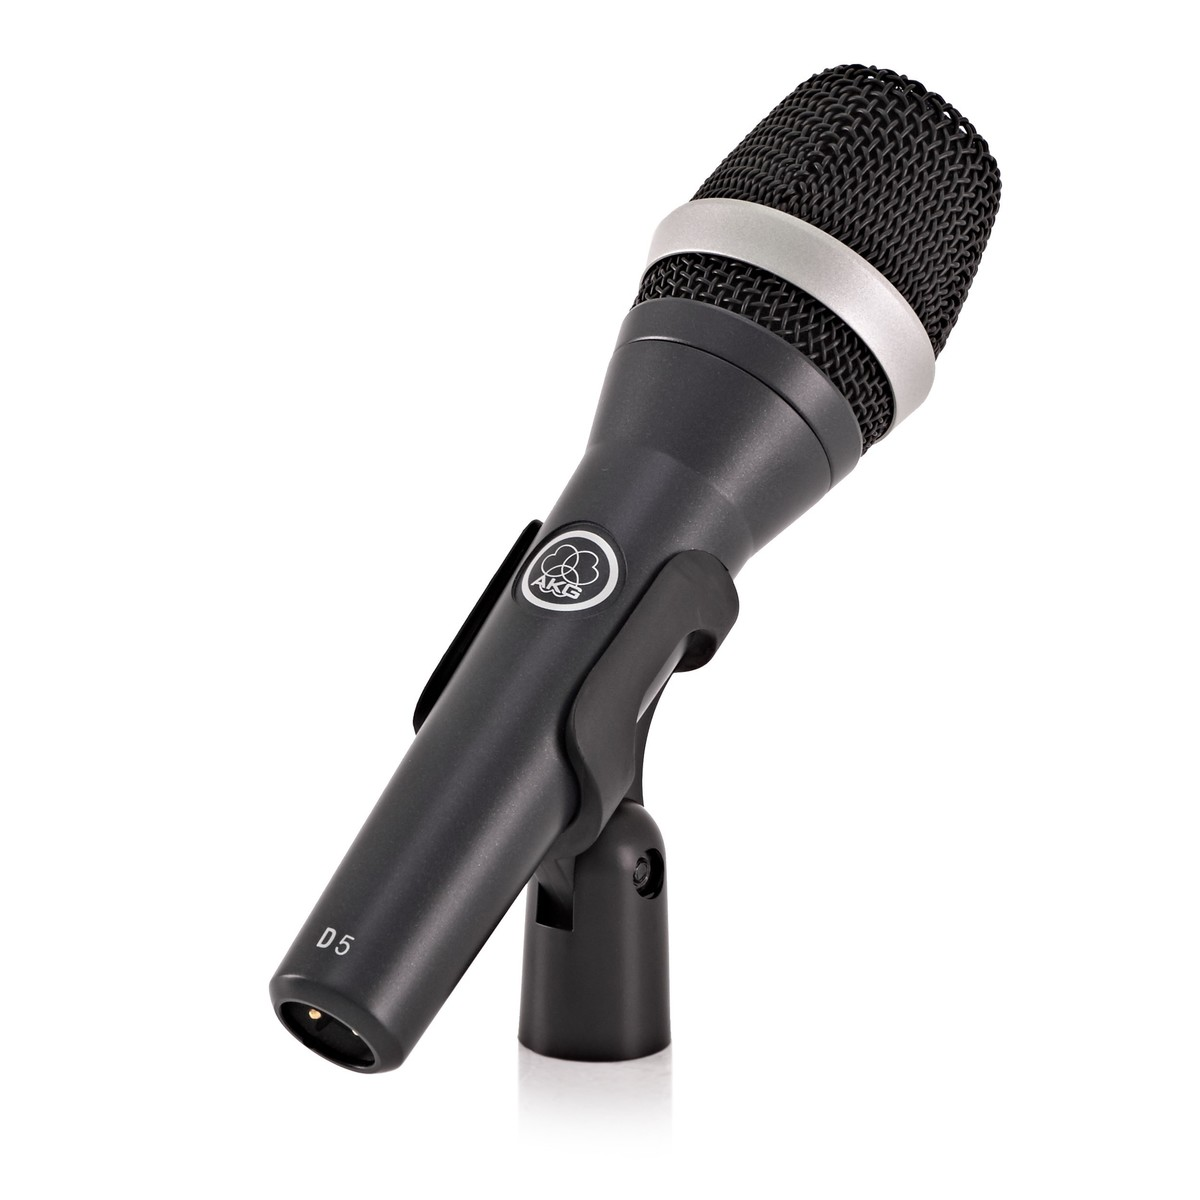 akg d5 dynamic lead vocal microphone at gear4music. Black Bedroom Furniture Sets. Home Design Ideas